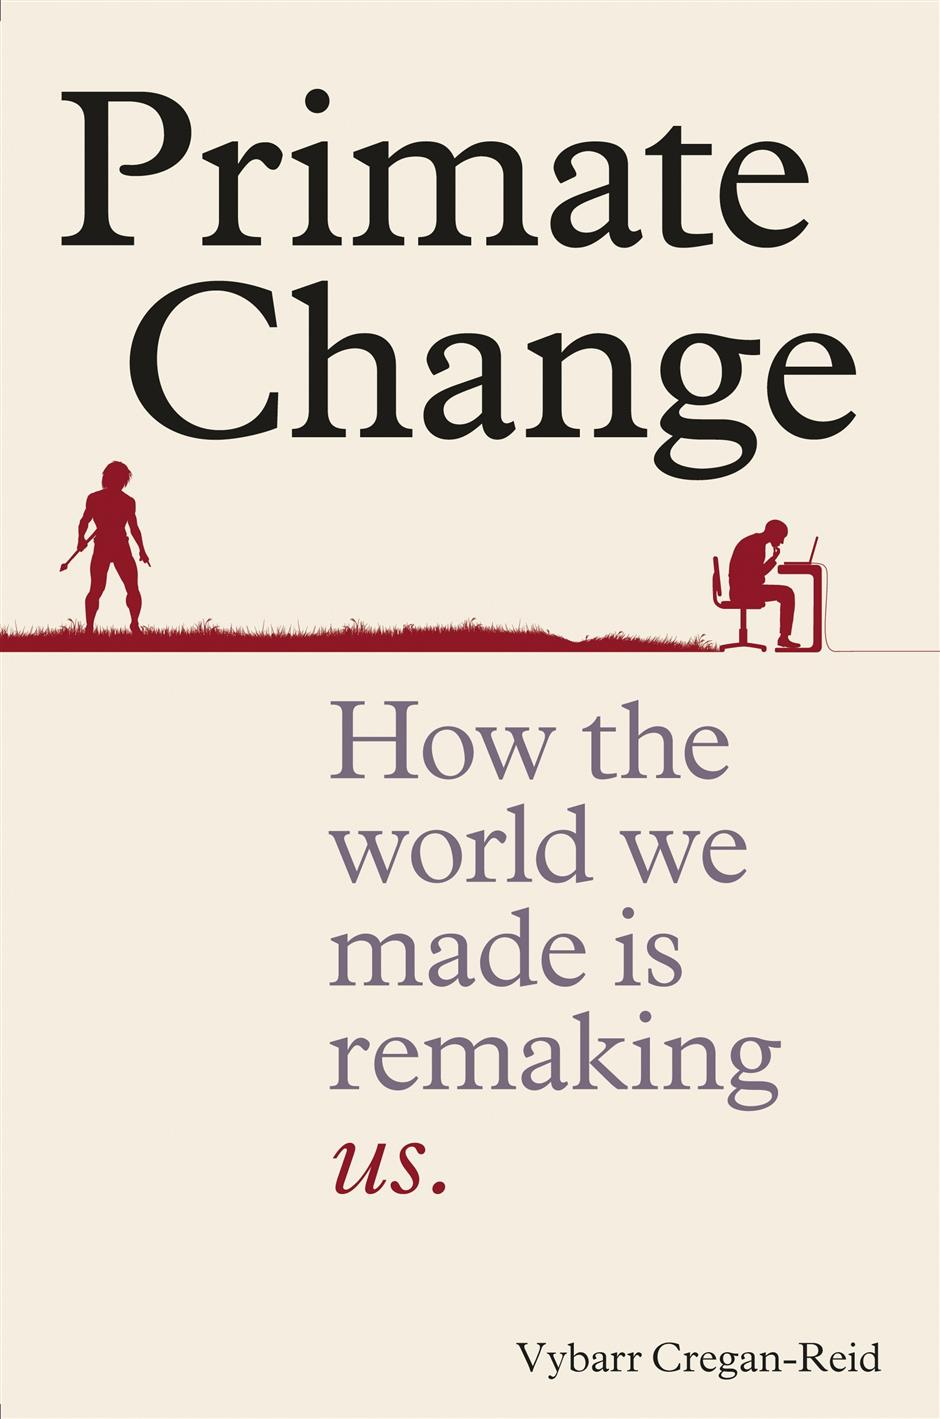 Vybarr Cregan-reid: Primate Change : How the world We Made is Remaking Us